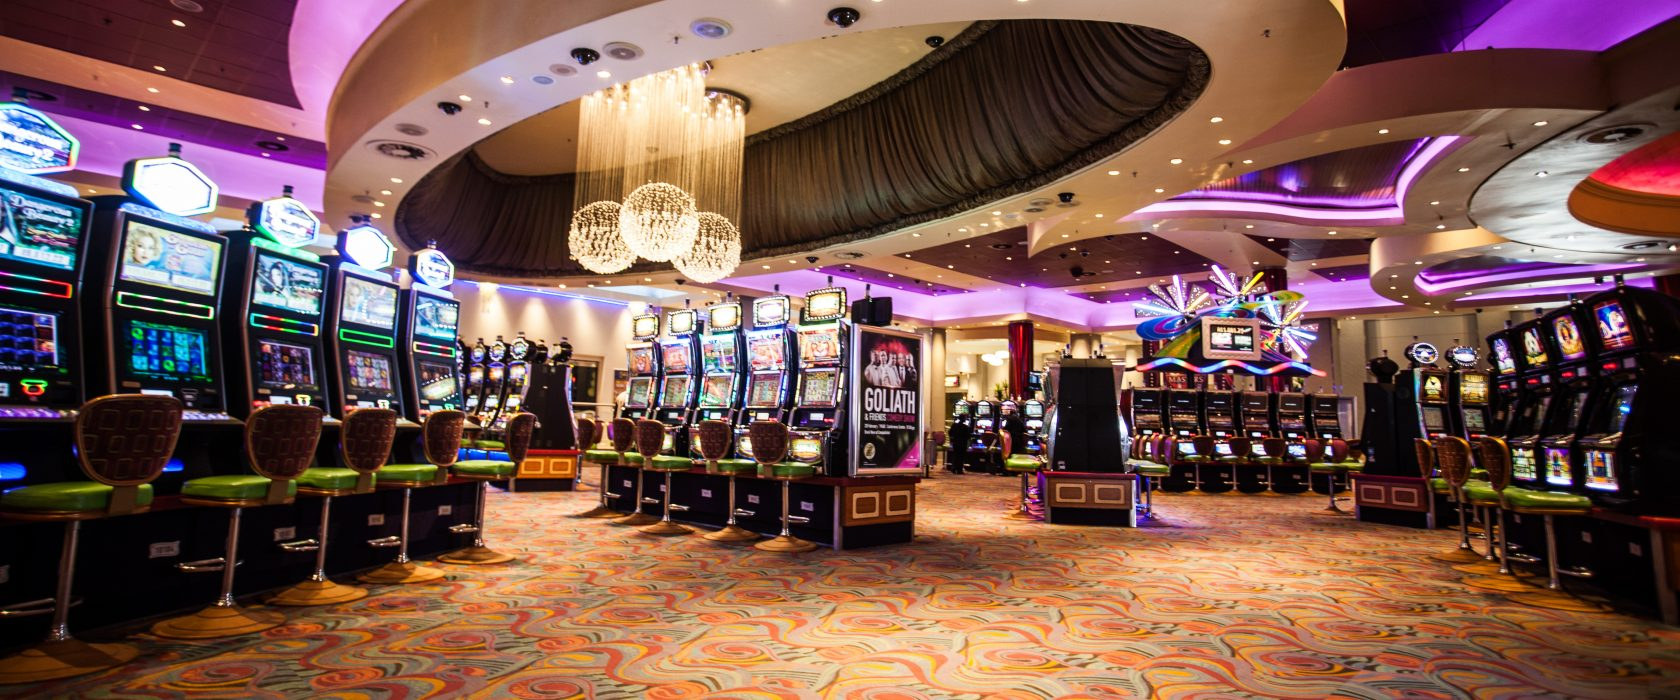 Golden Horse Gaming Floor